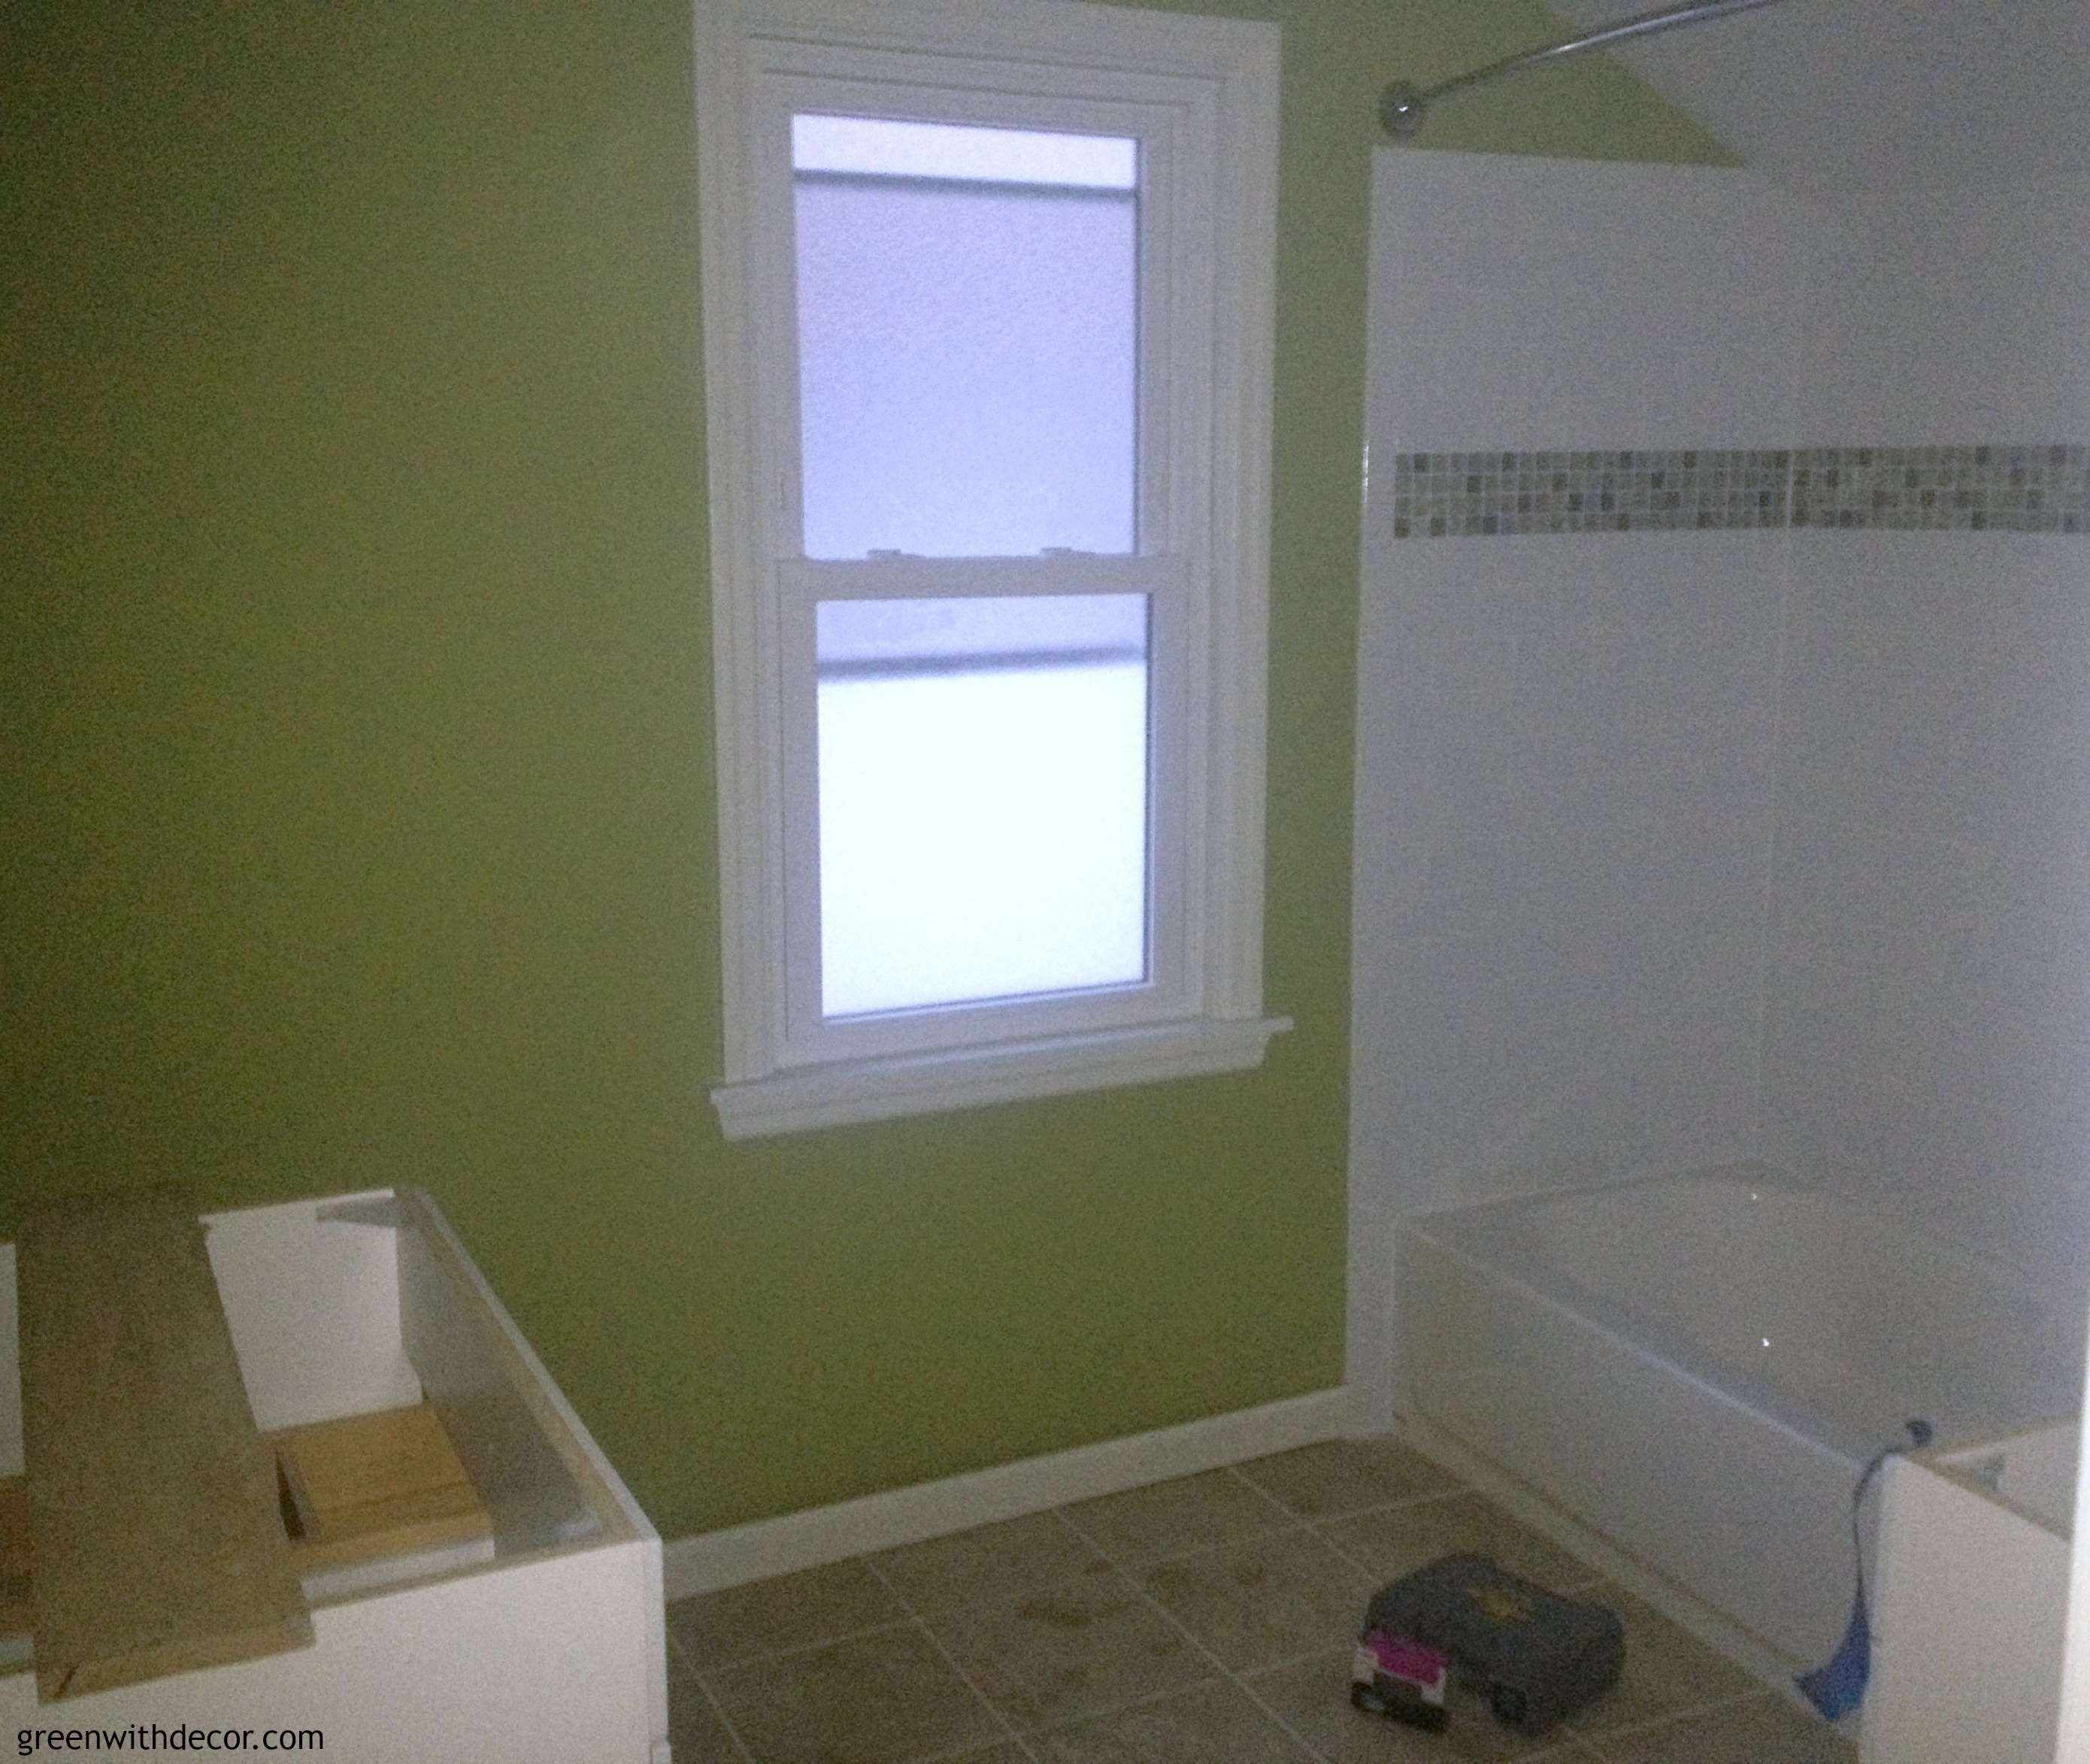 Green With Decor – Sherwin Williams Ryegrass green bathroom